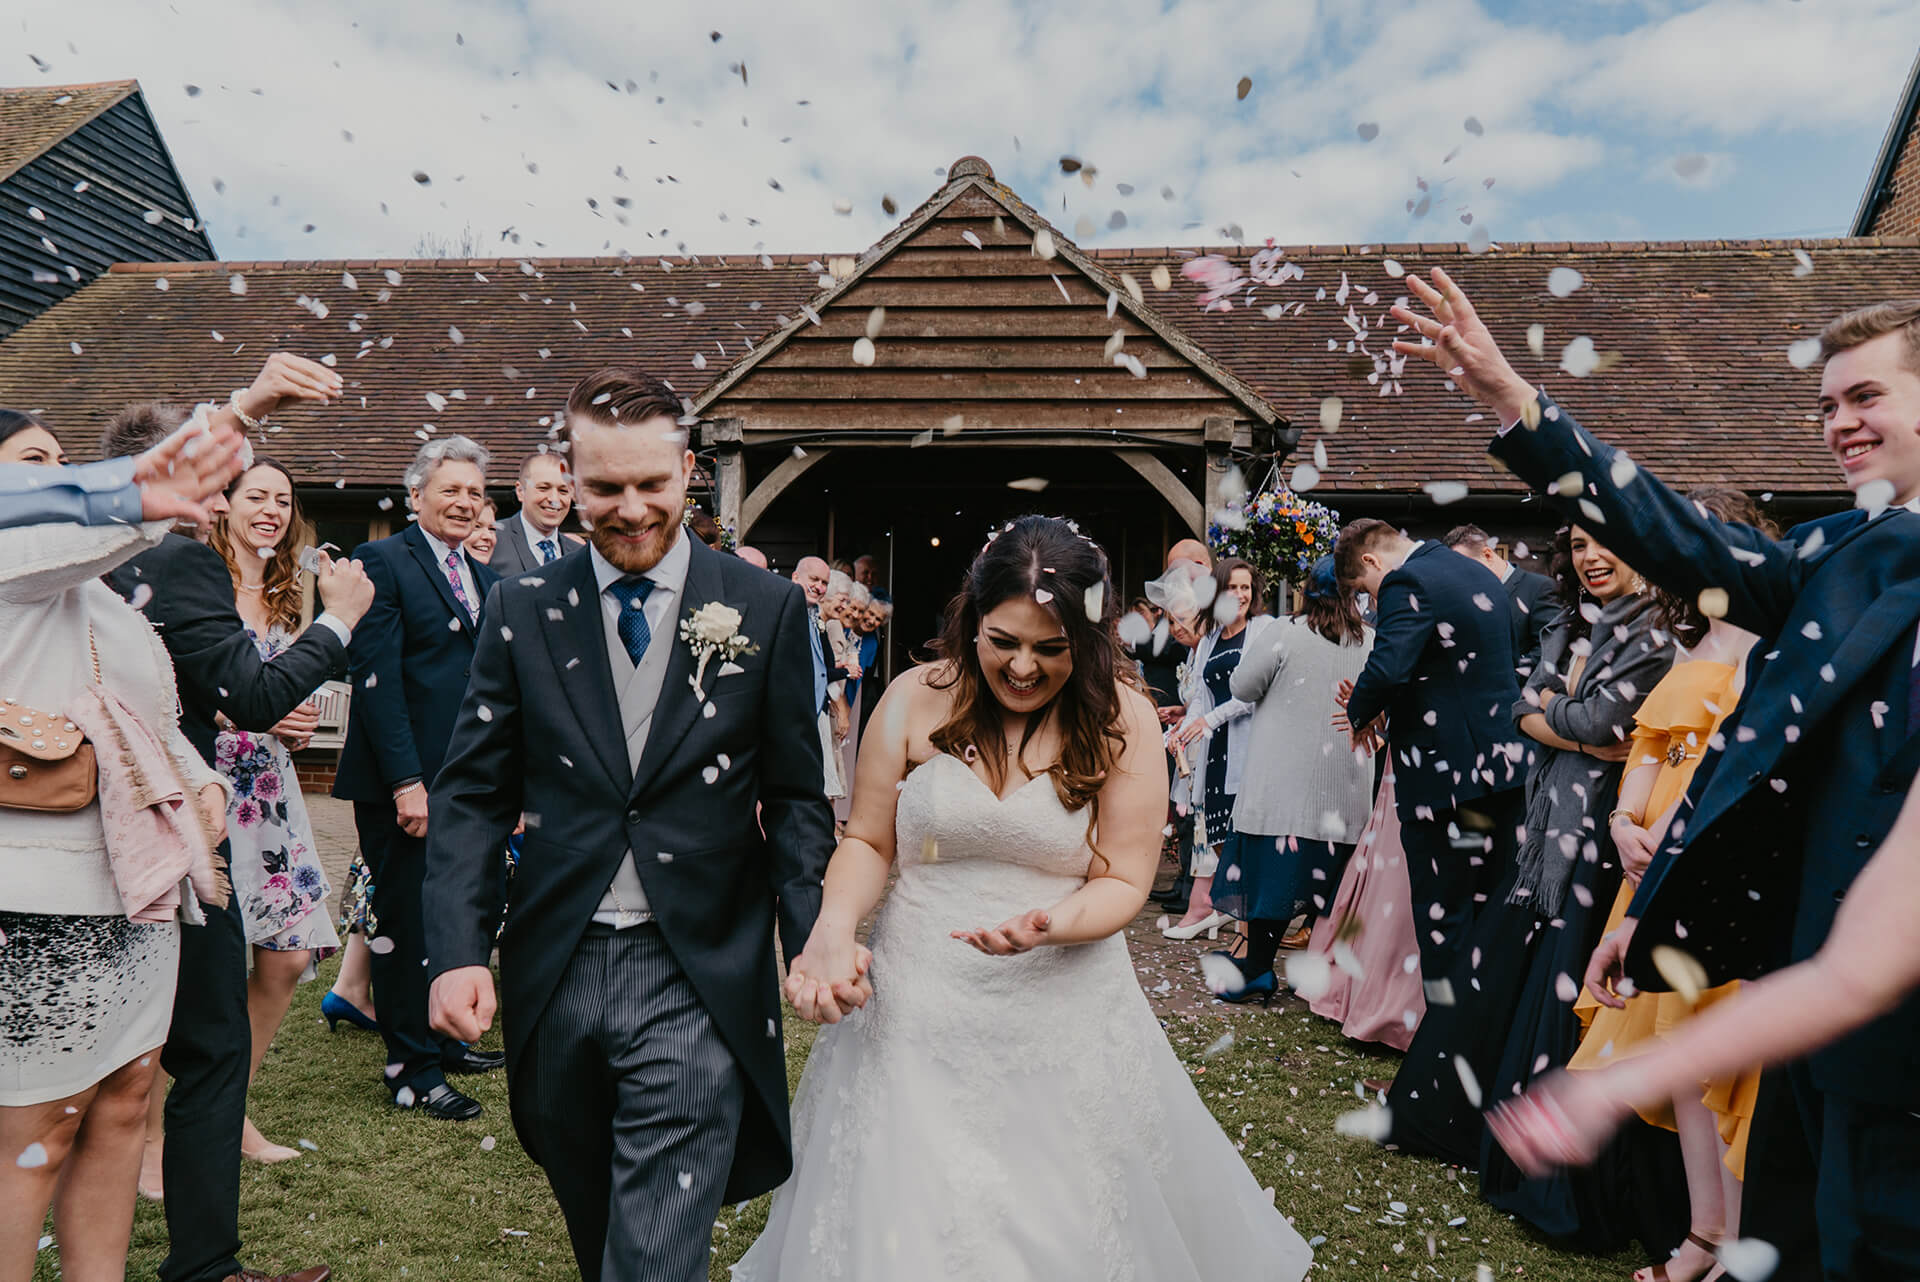 Wedding Photography | Bride and Groom | Kent Wedding | Cooling Castle Barn | Confetti